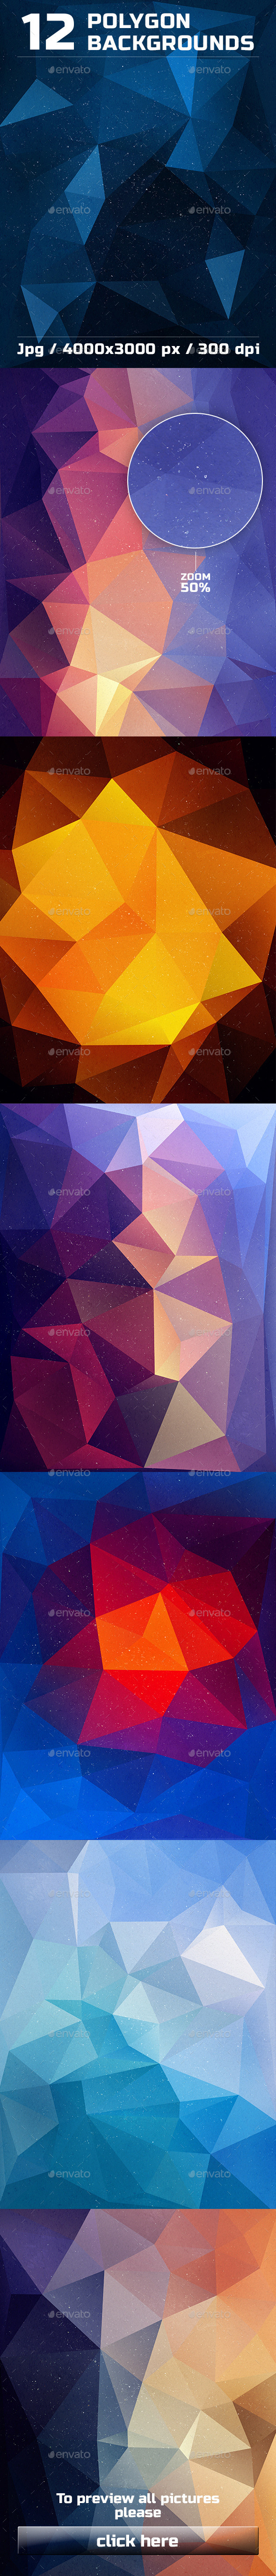 12 Polygon Backgrounds Vol. 3 - Abstract Backgrounds